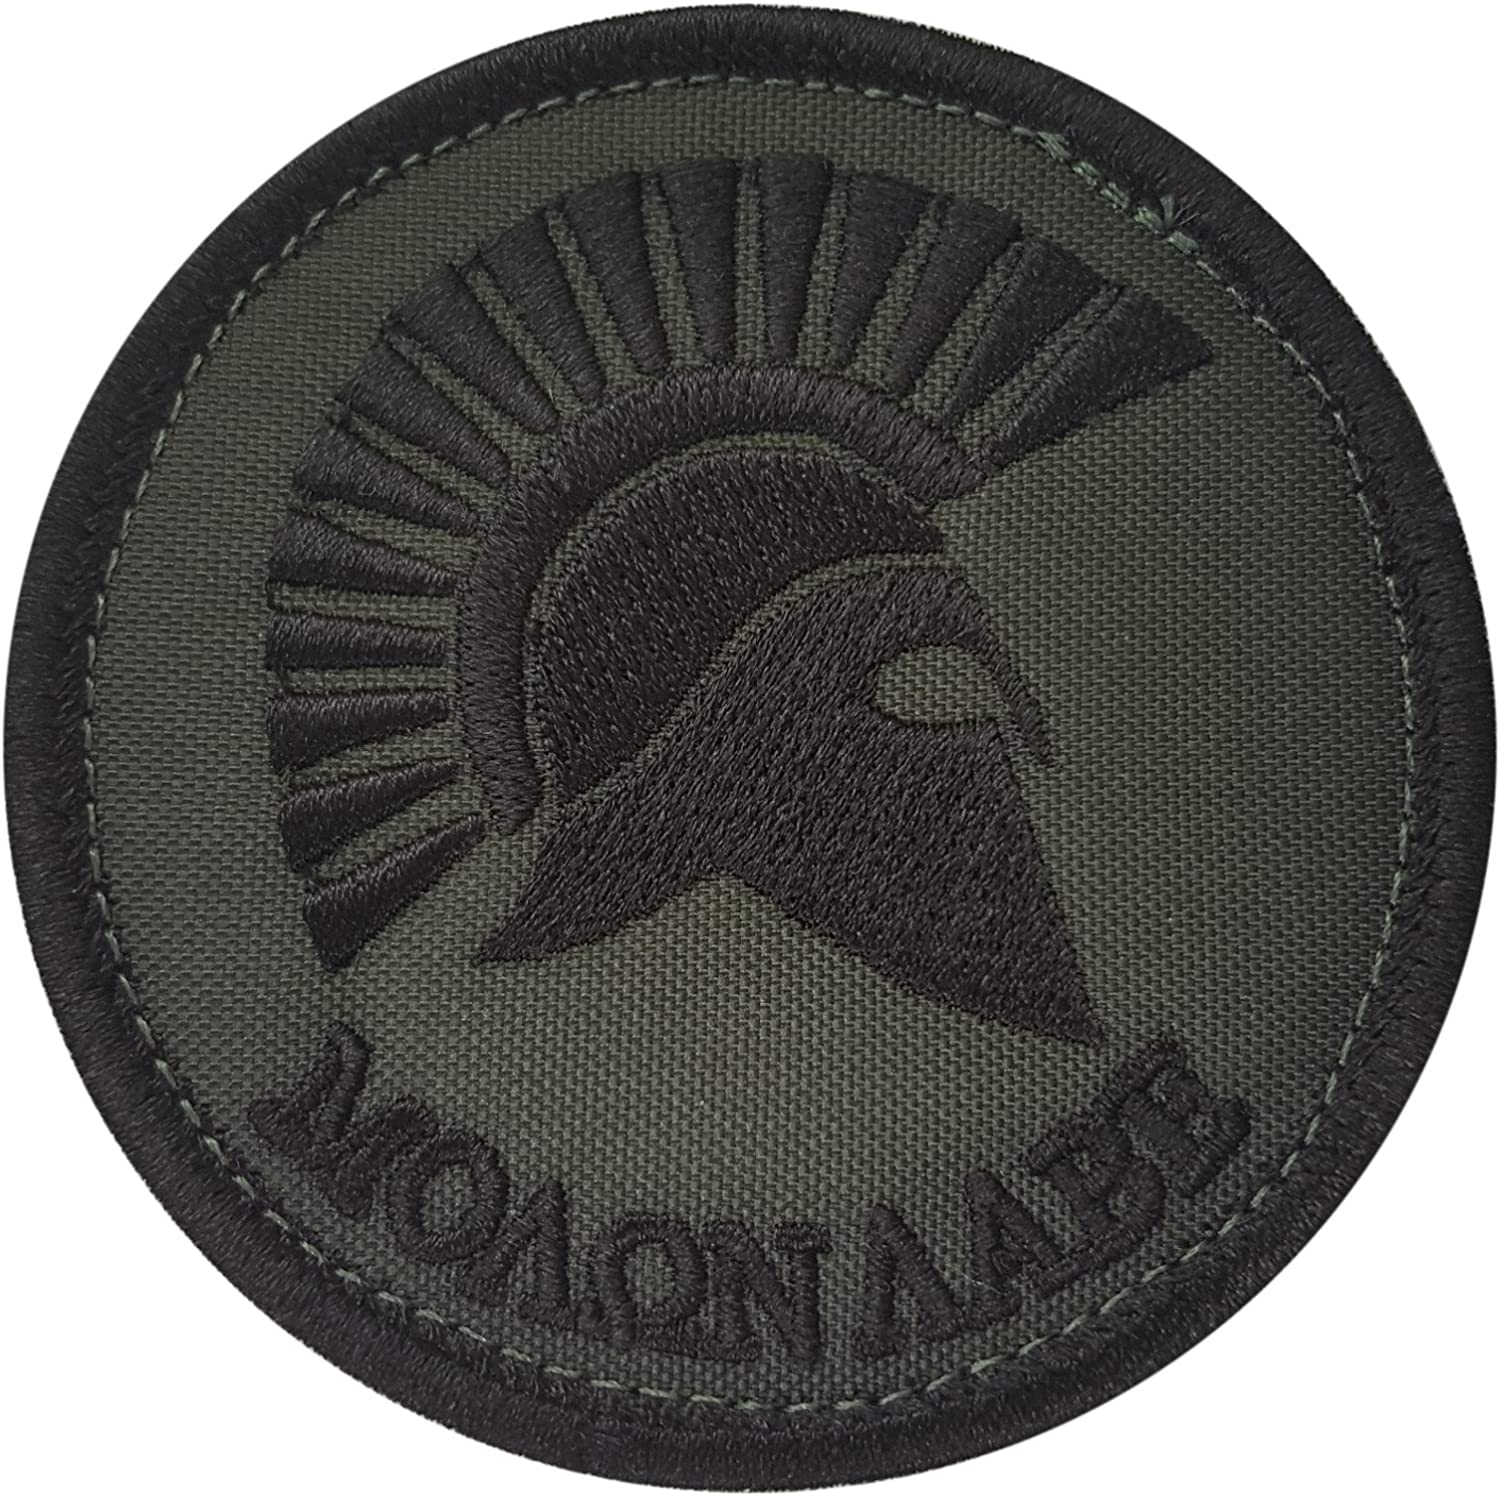 Olive Drab Molon Labe Spartan Helmet OD Green Morale Tactical Army Sew Iron on Patch